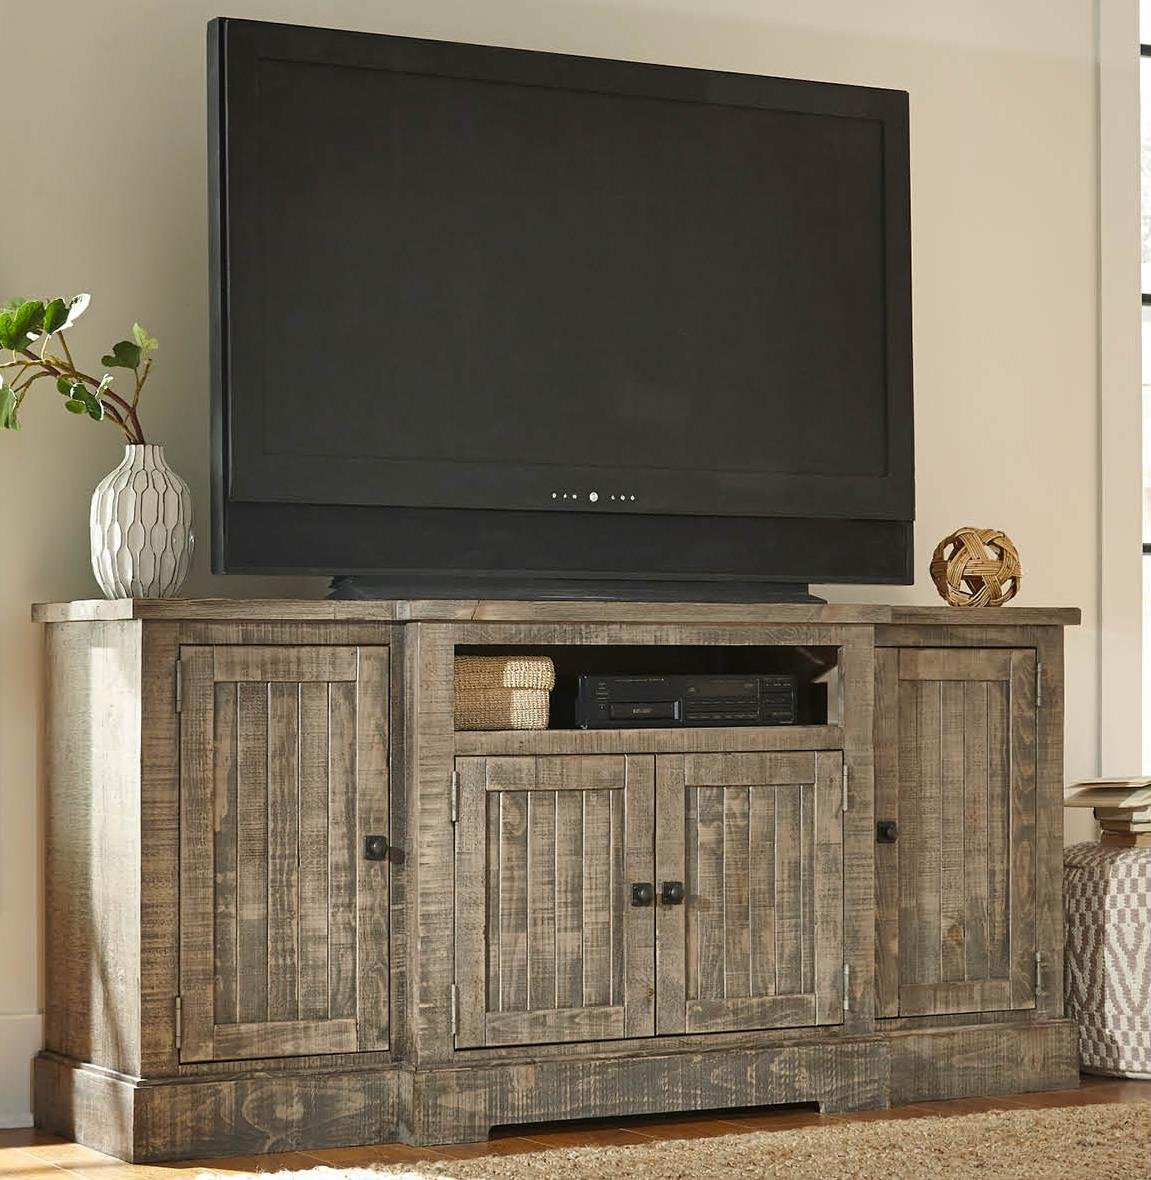 72 in. TV Console in Weathered Gray Finish